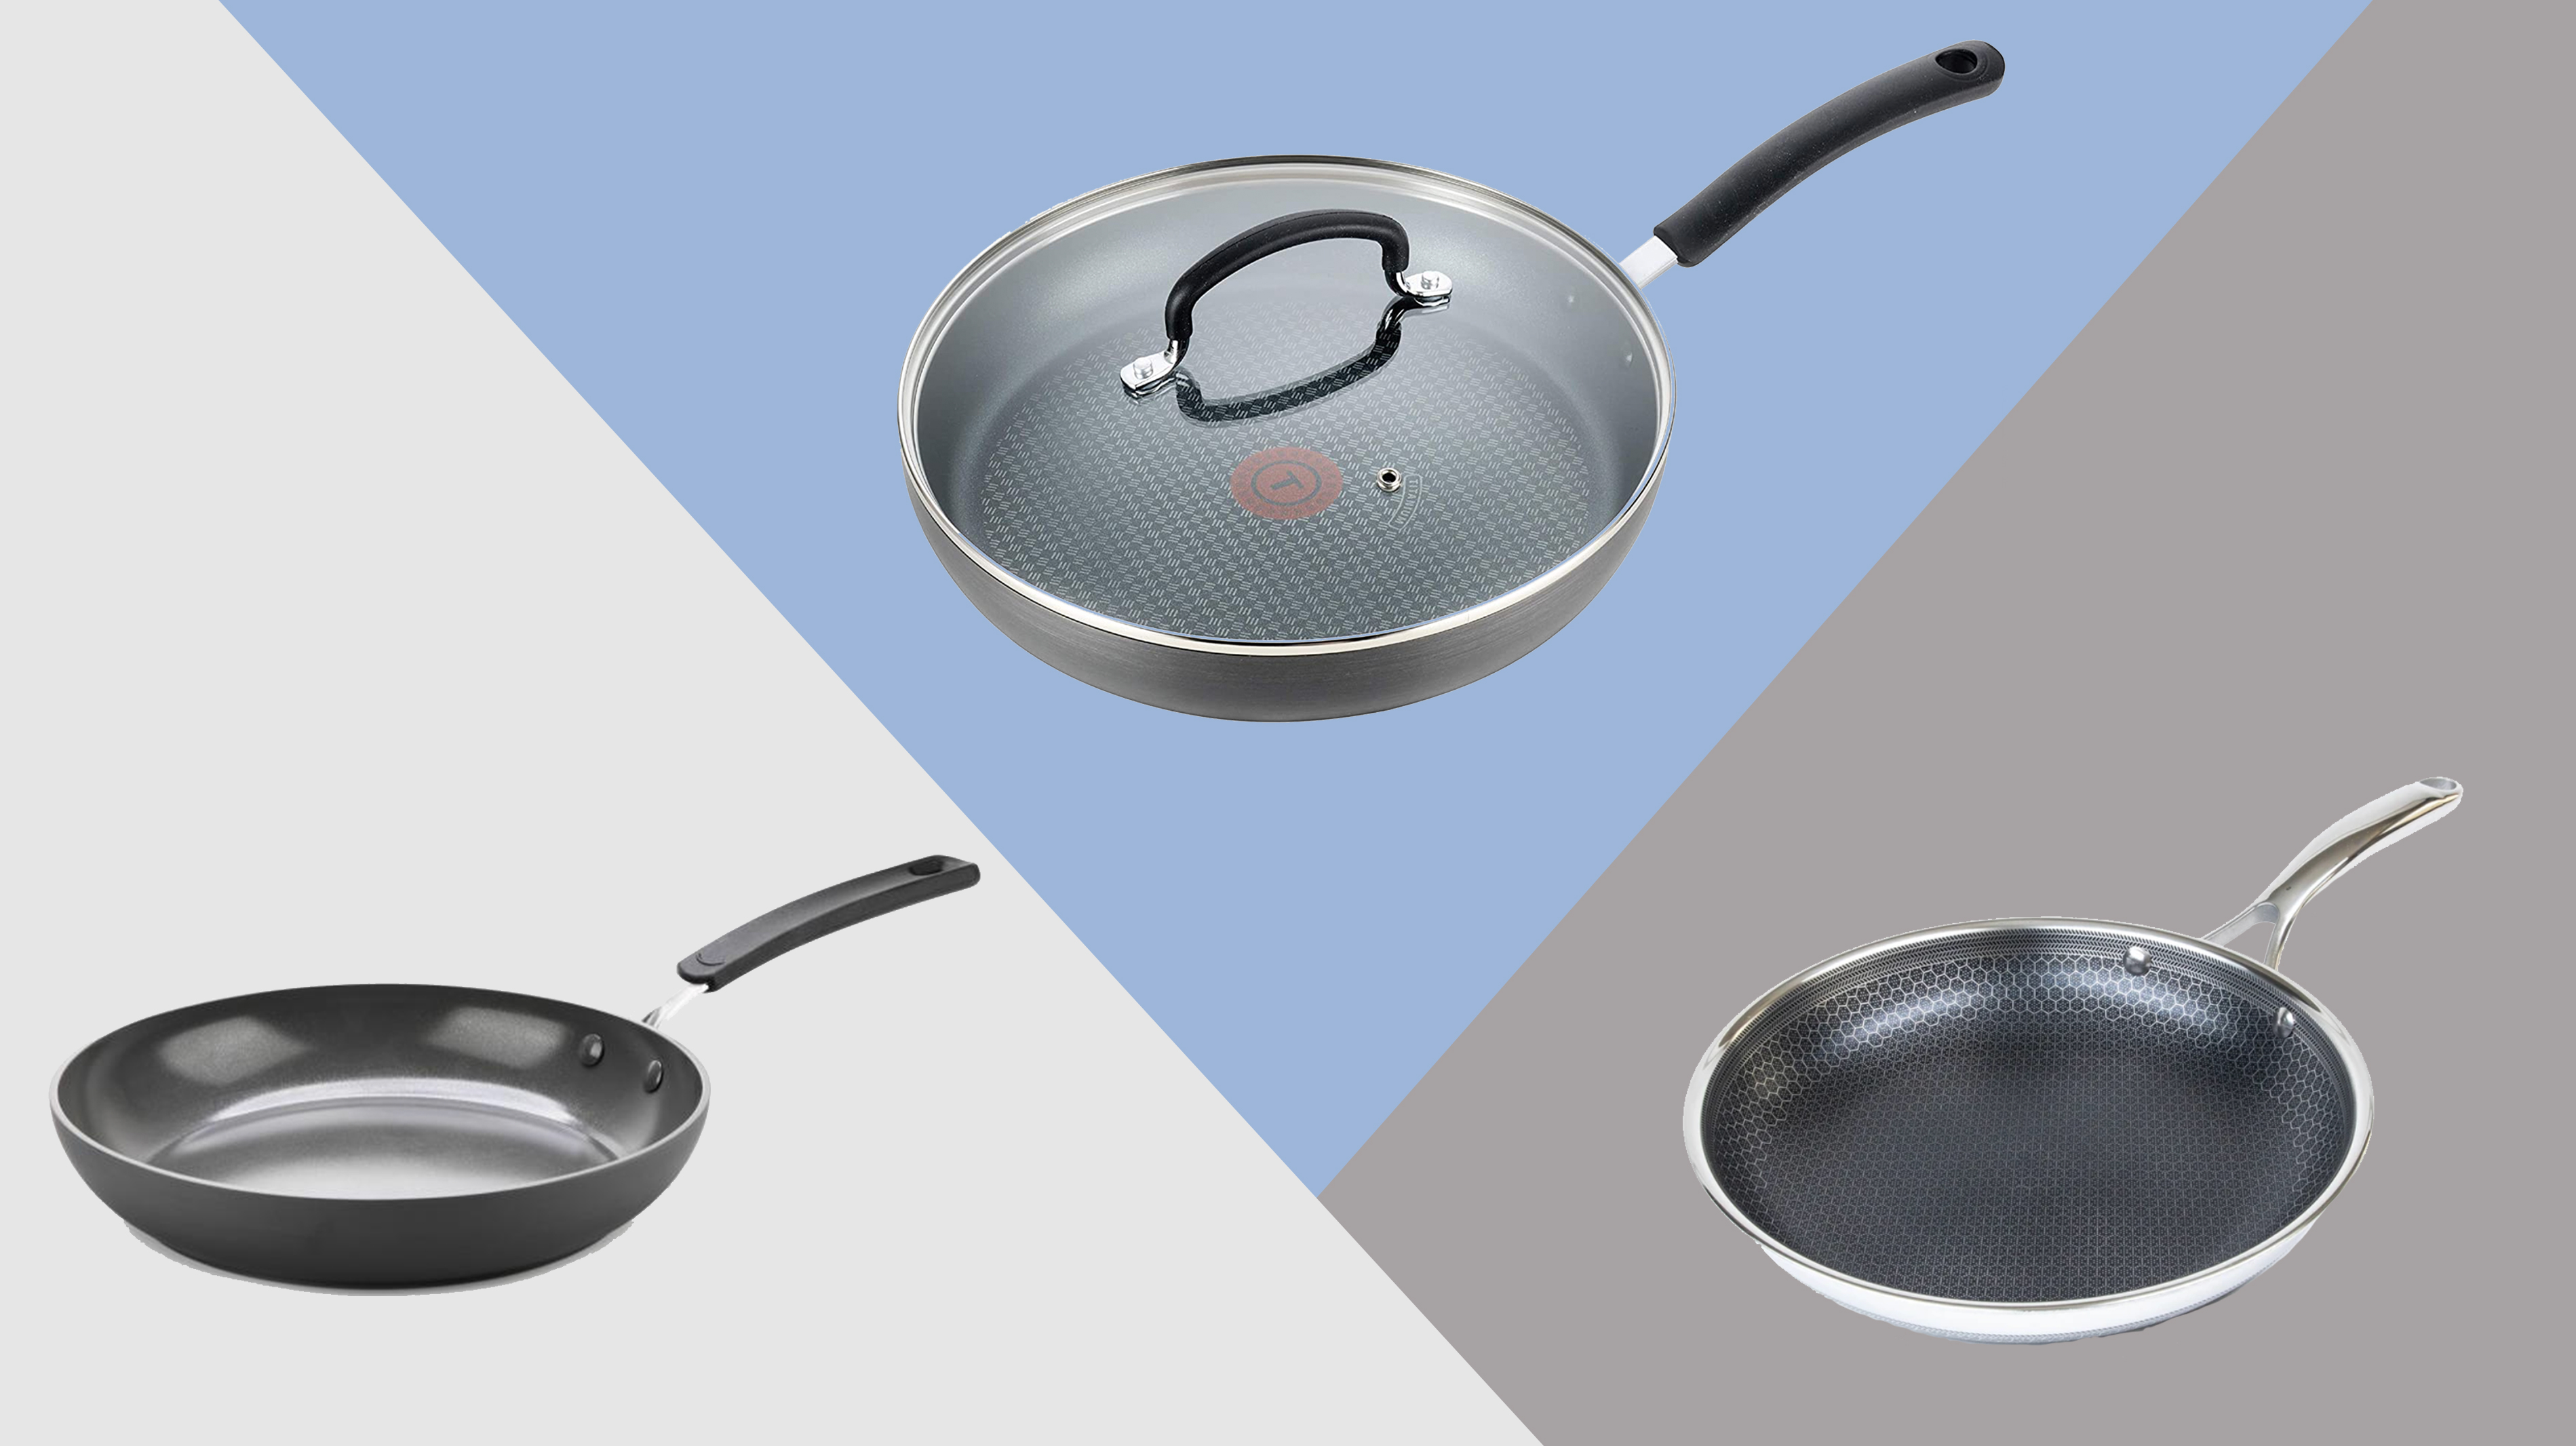 Best Nonstick Pans We Tested T Fal Hexclad Greenpan Cuisinart And More Cnn Underscored